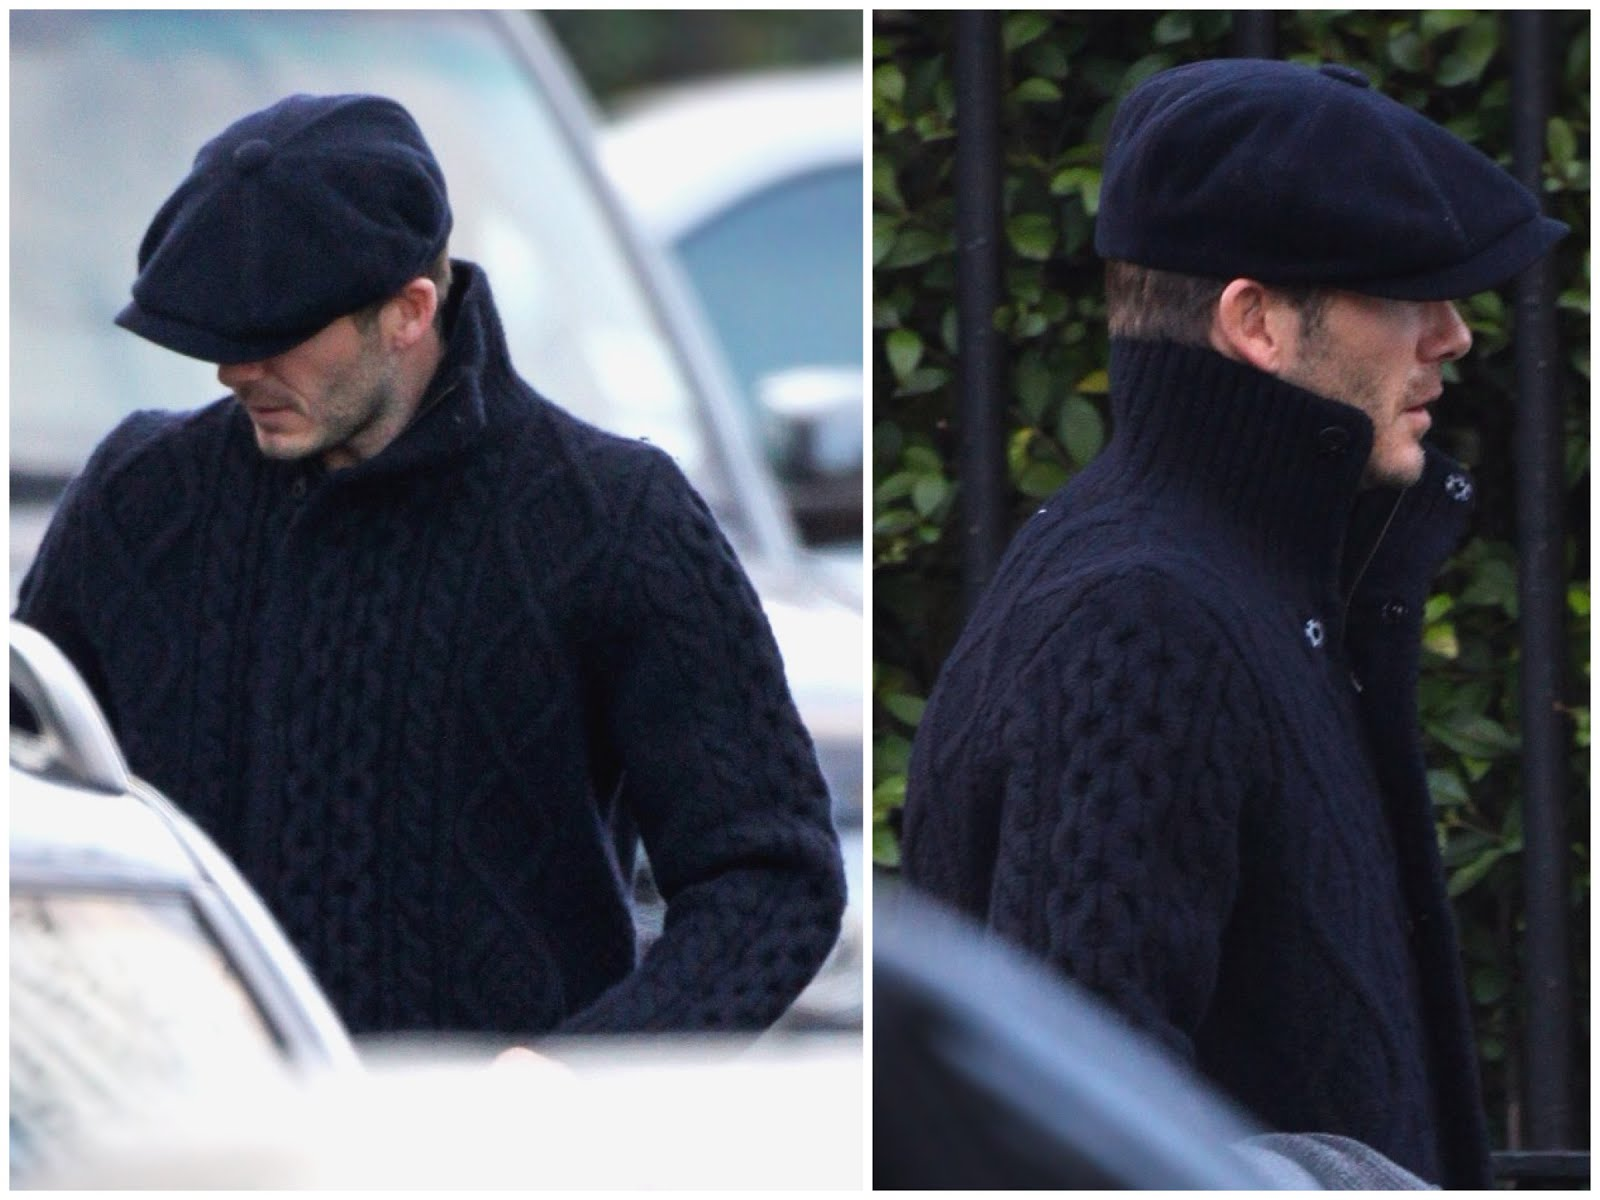 00O00 Menswear Blog David Beckham in Maison Martin Margiela heavy weight cabit knit snap button jacket, out and about in London February 2013